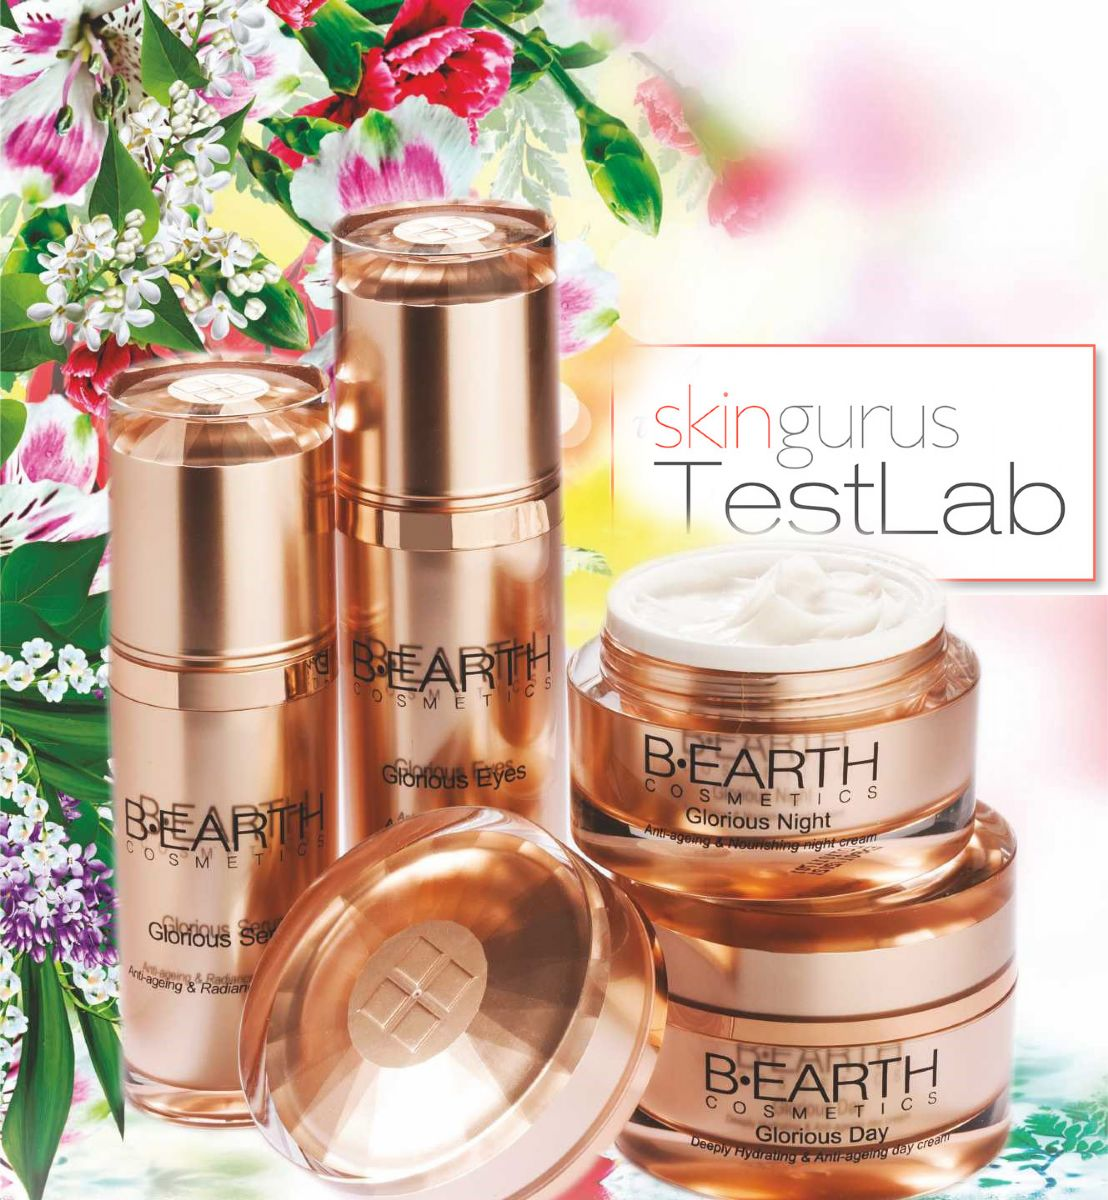 BEARTH COSMETICS